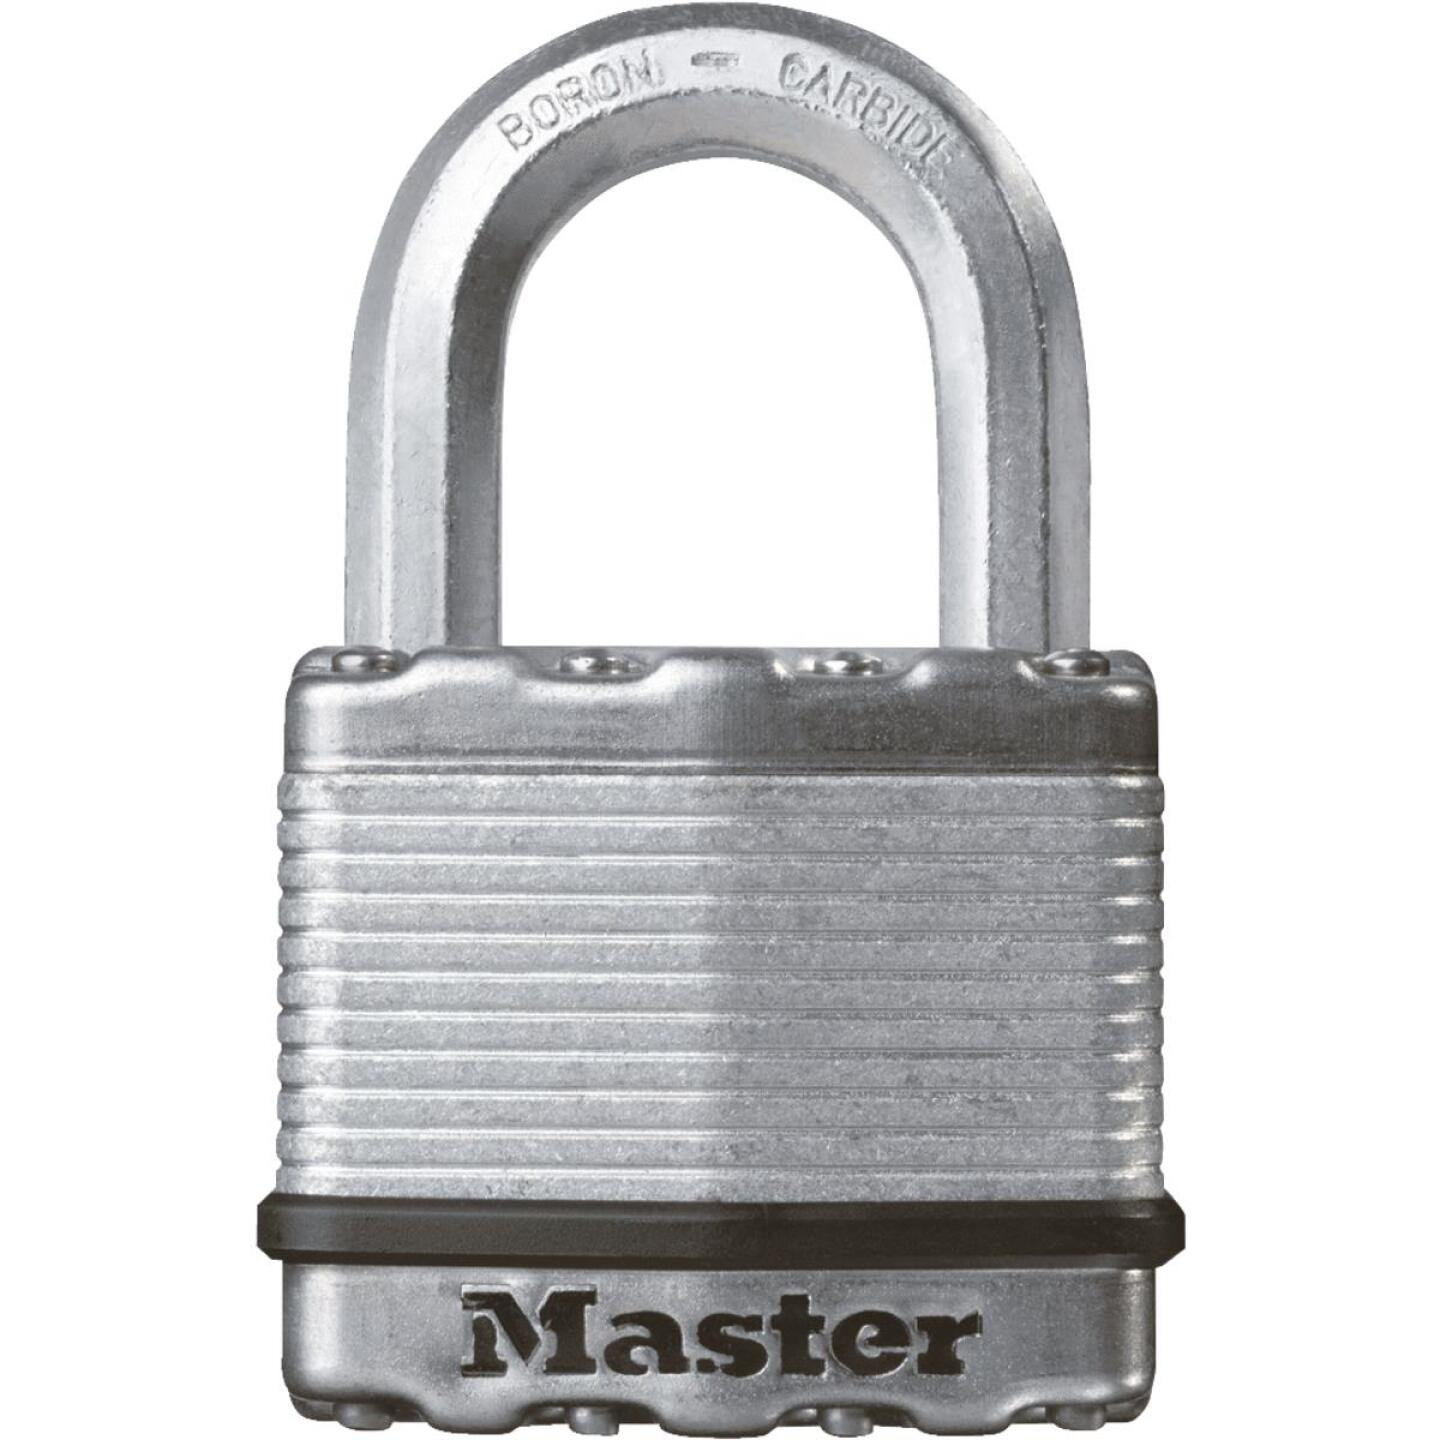 Master Lock Magnum 2 In. W. Dual-Armor Keyed Alike Padlock with 1 In. L. Shackle Image 1